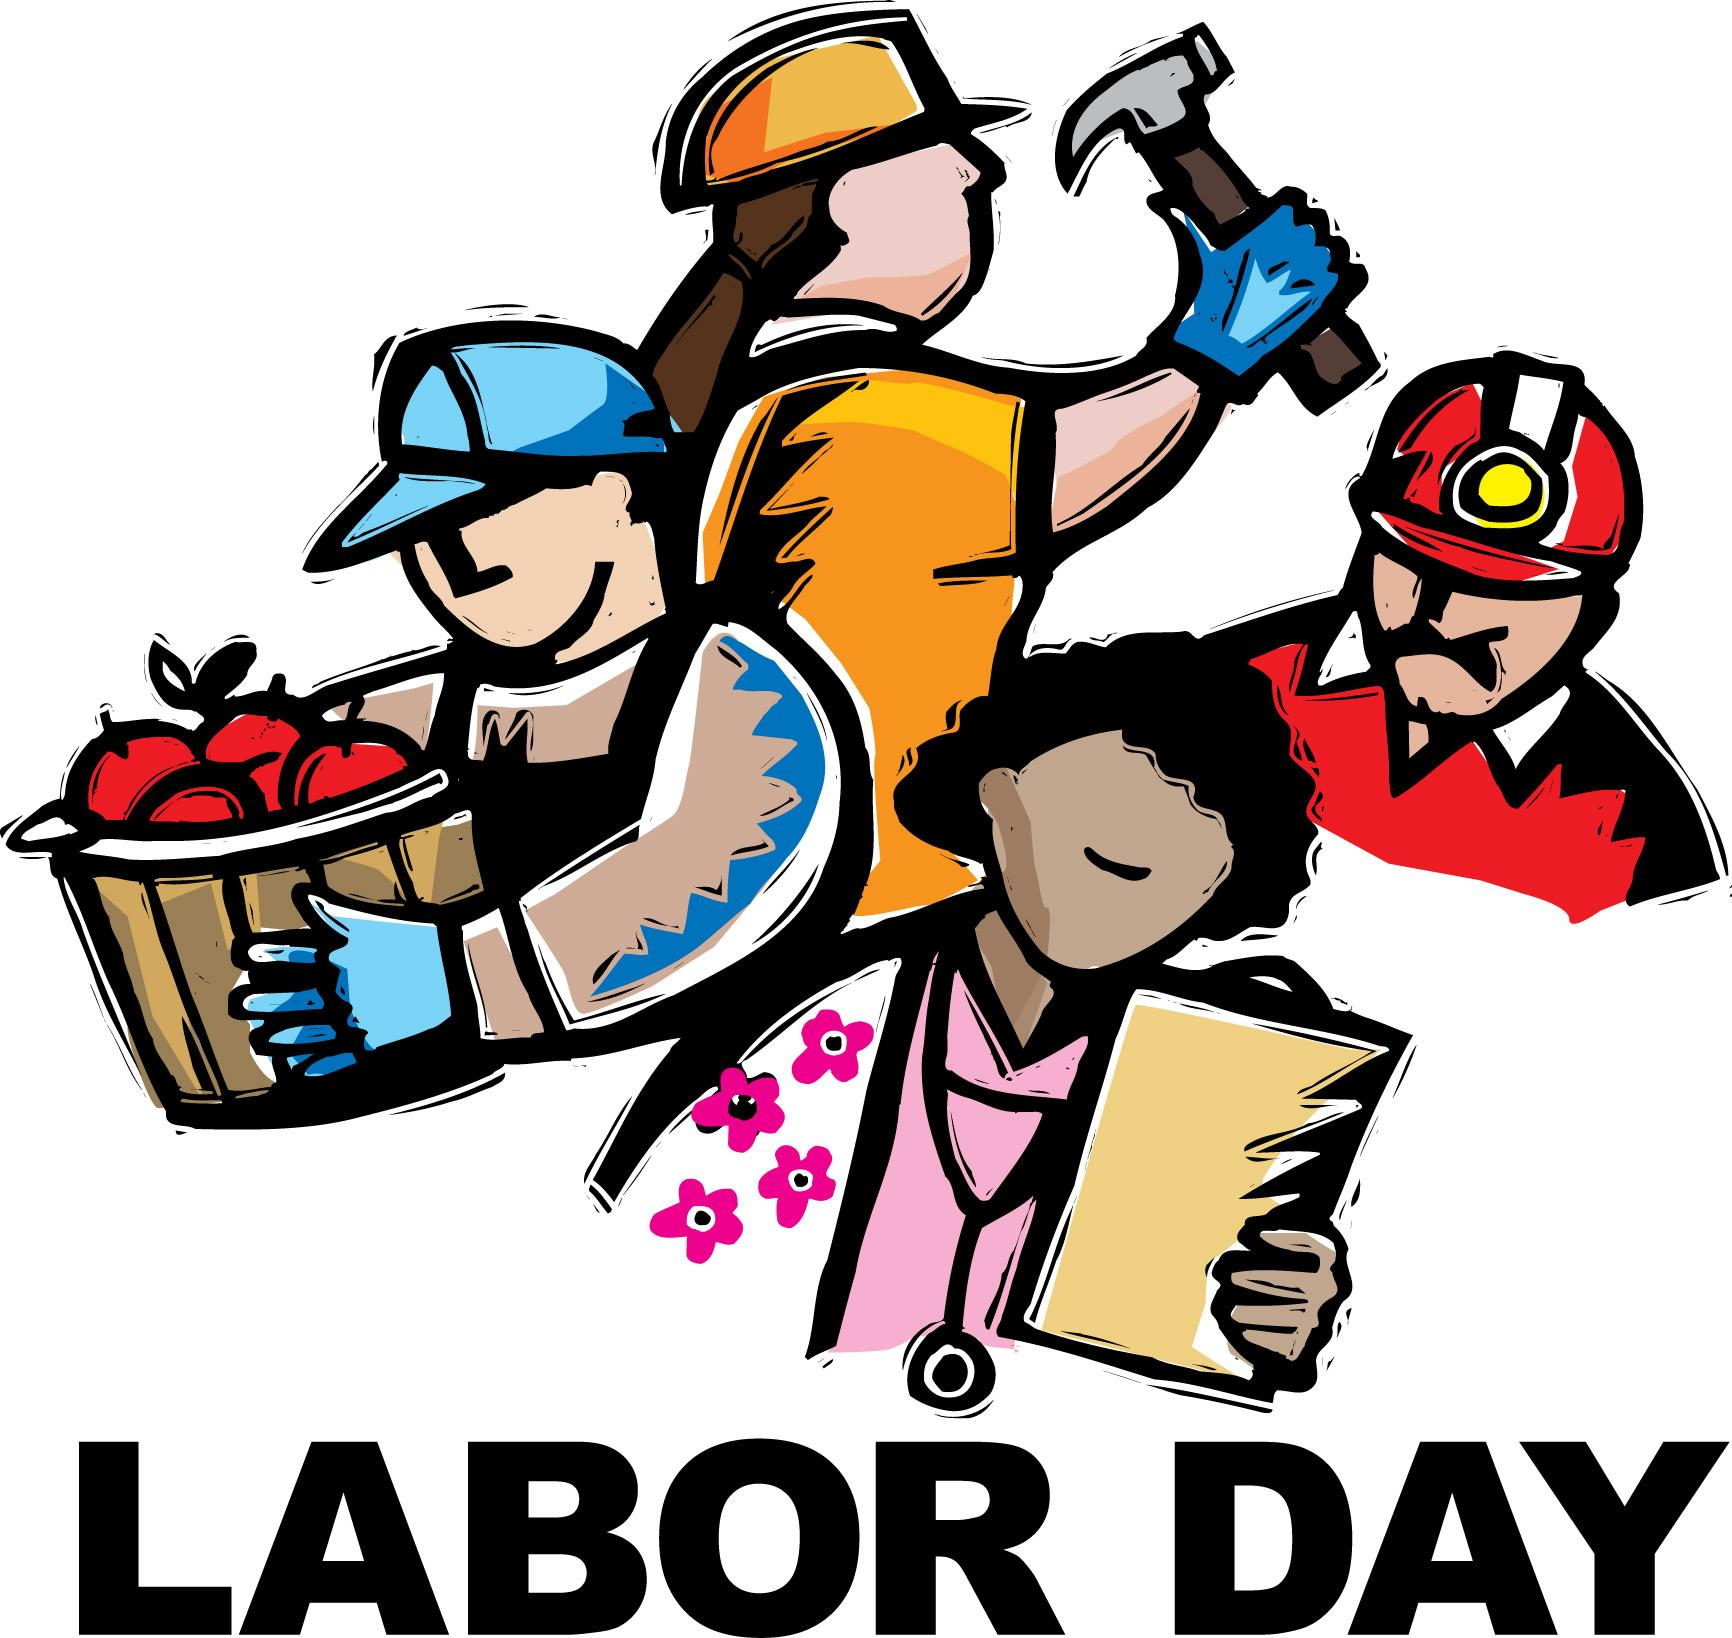 Labor day clipart clipart freeuse download Free Labor Day Clip Art Pictures - Clipartix freeuse download